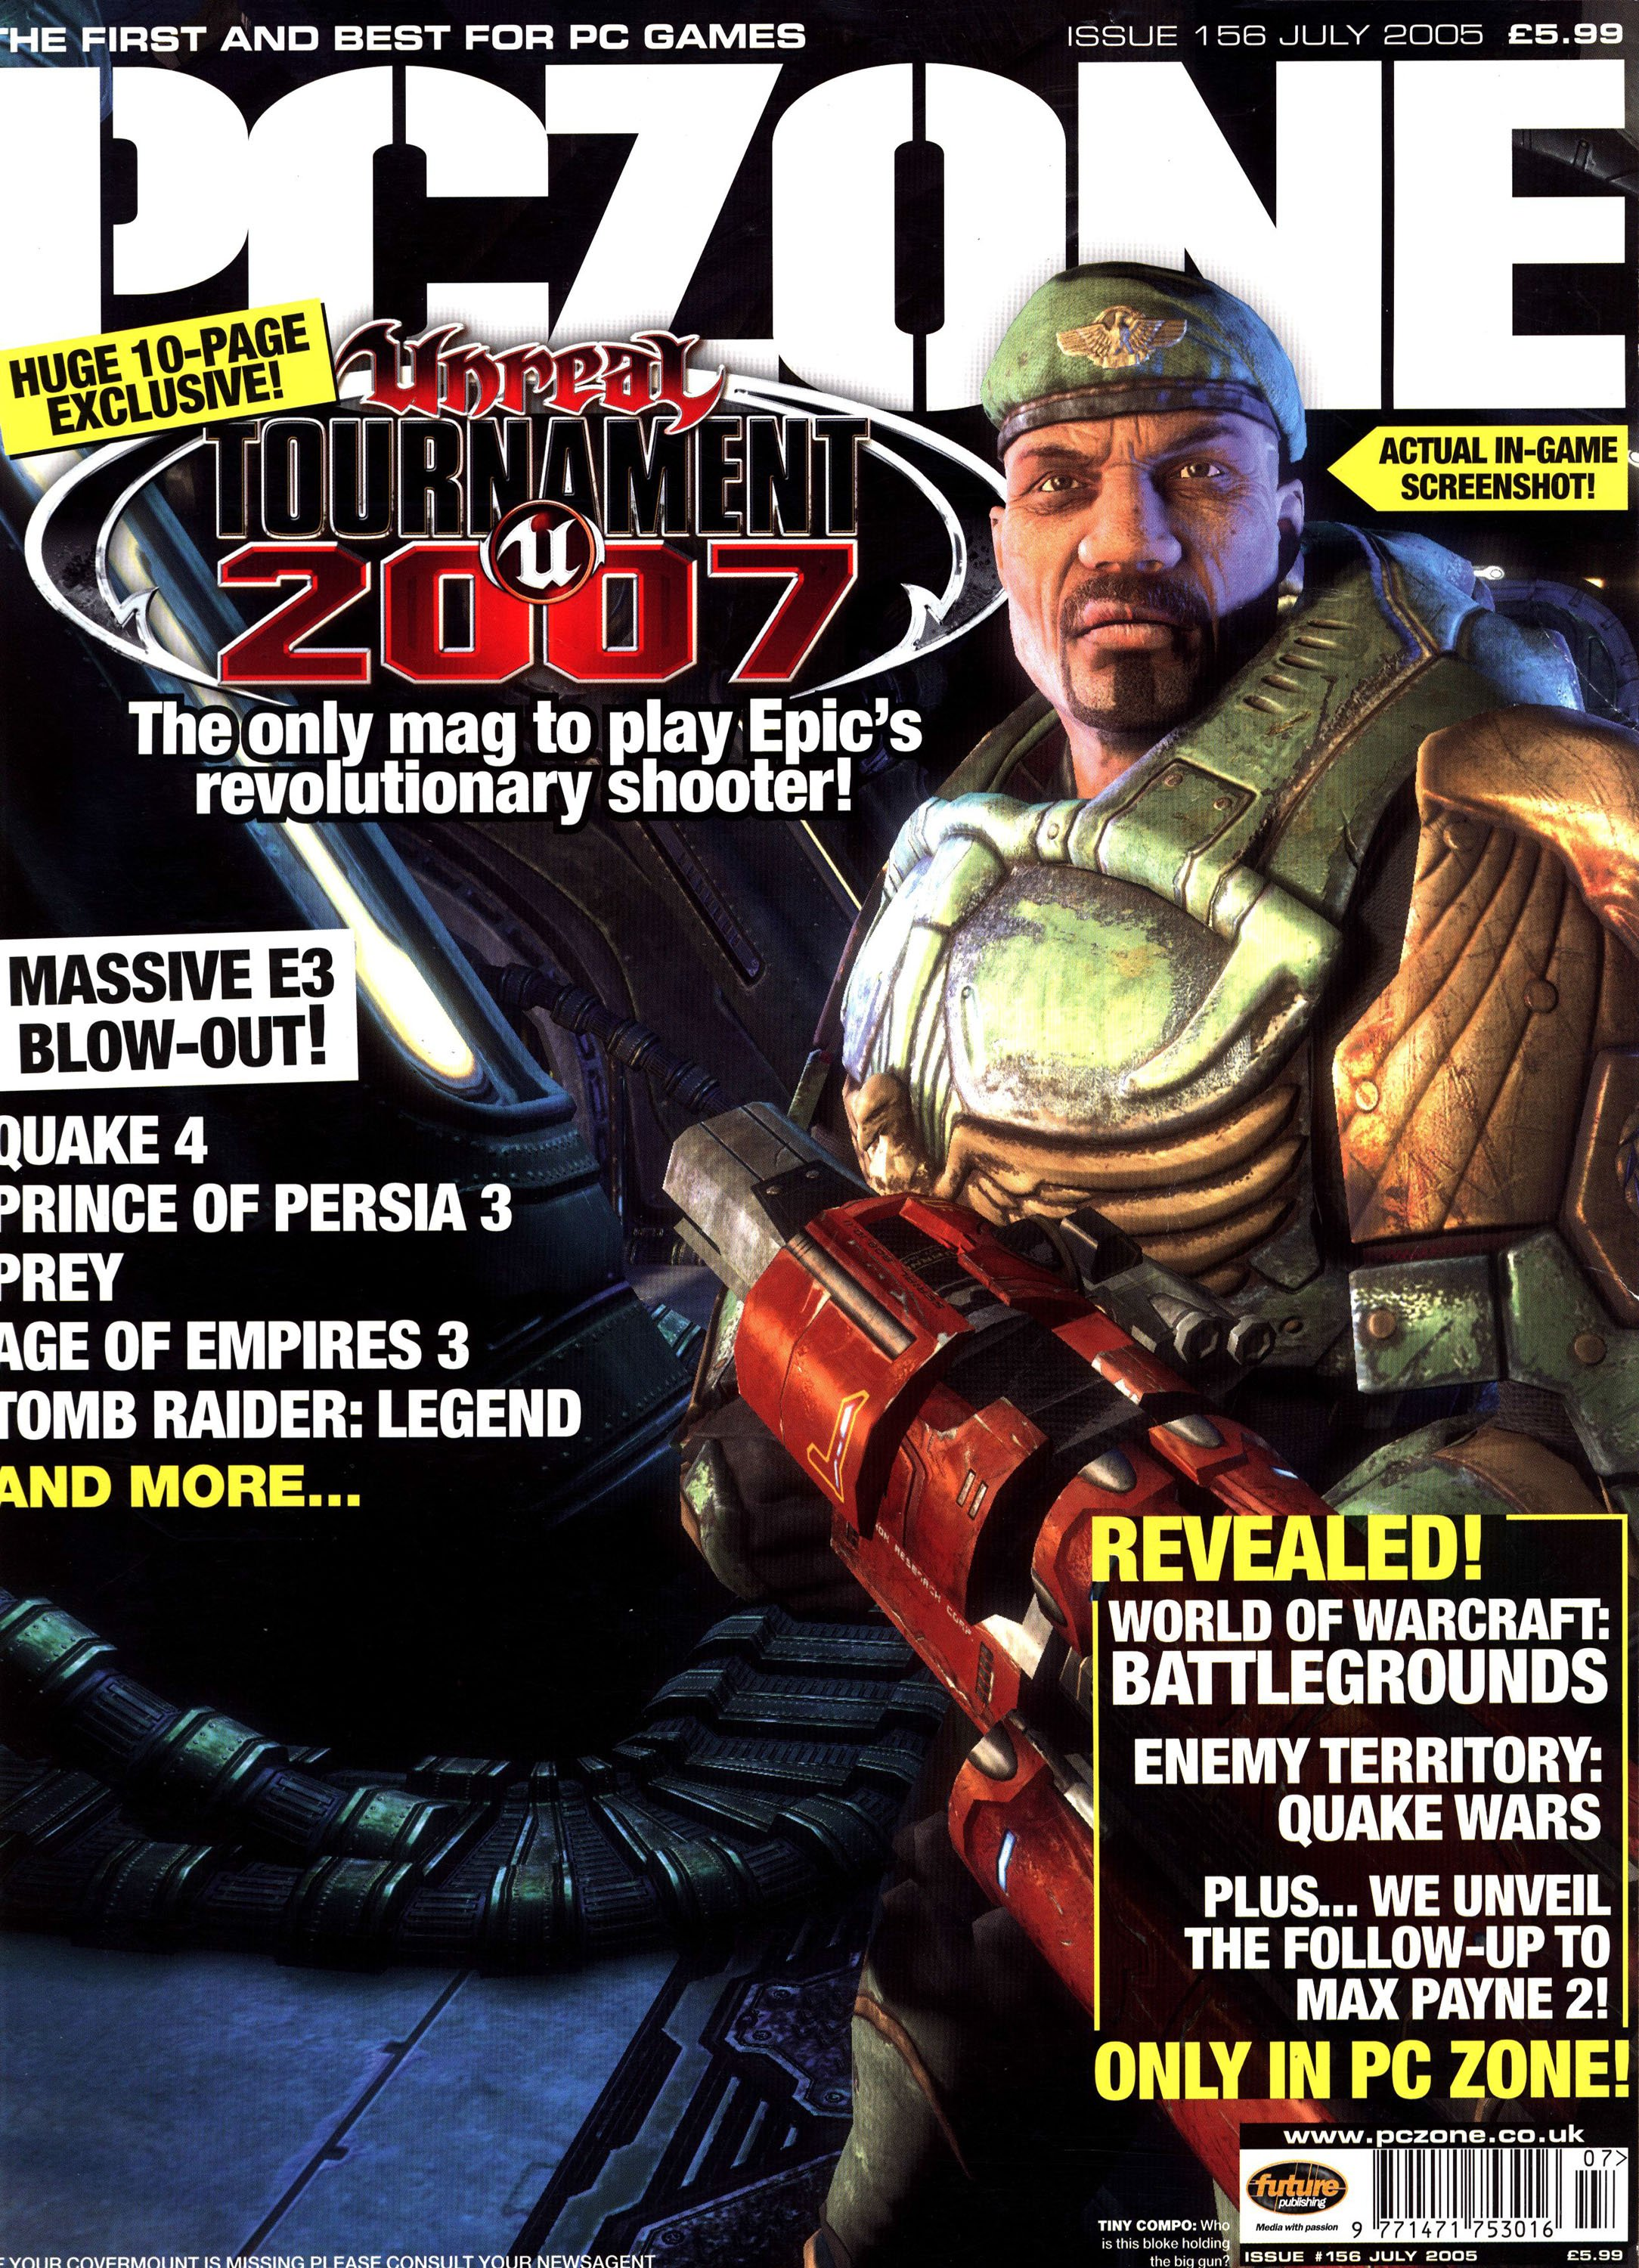 PC Zone Issue 156 (July 2005)